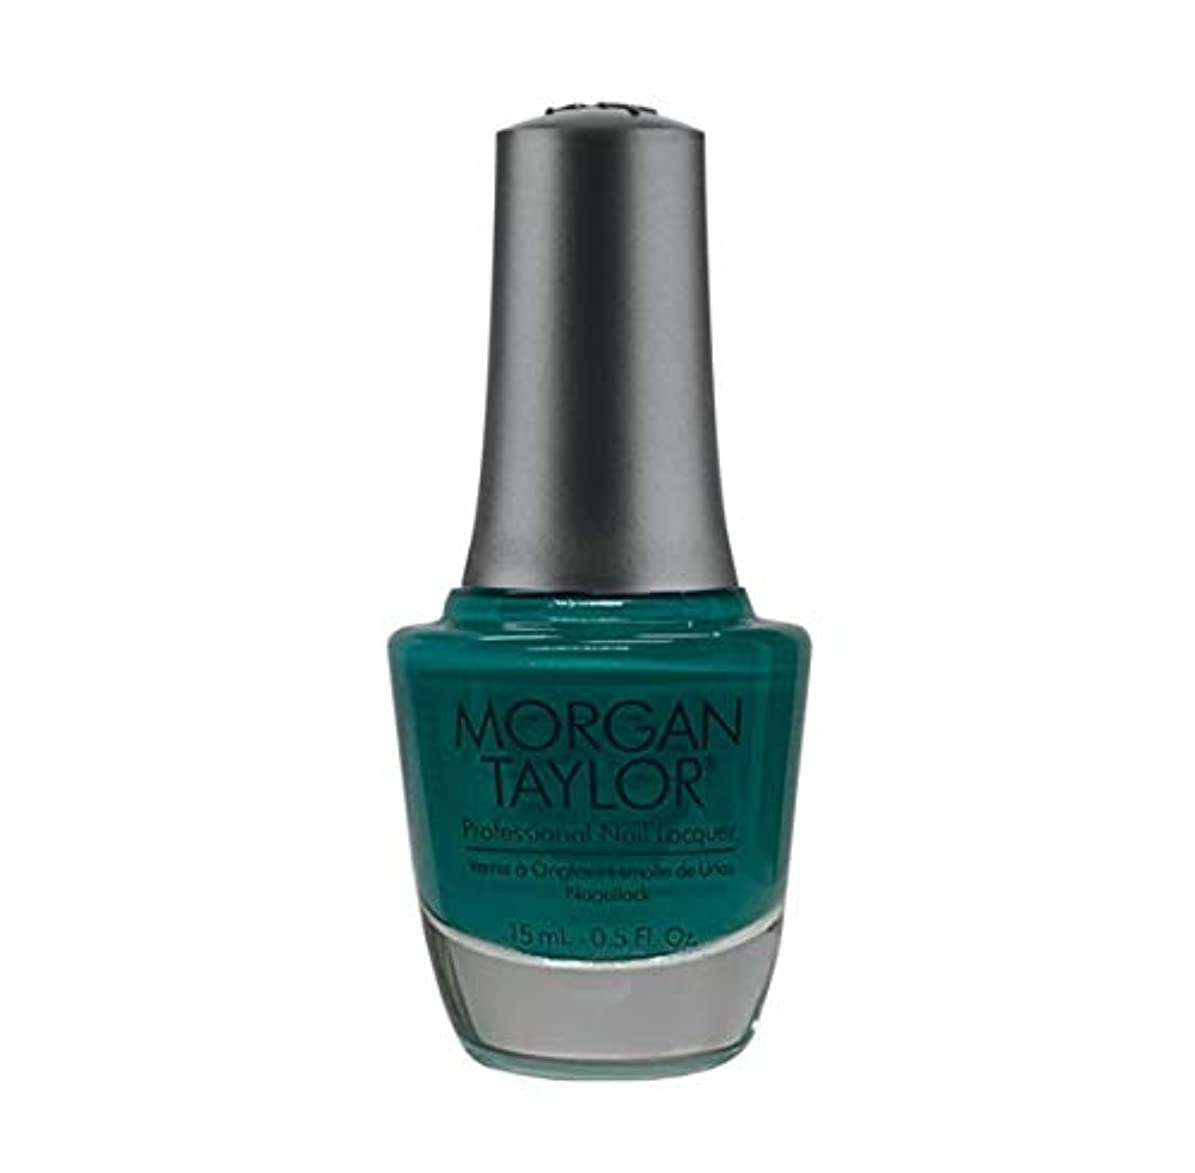 無知思慮のない狭いMorgan Taylor Nail Lacquer - Rocketman Collection - Sir Teal To You - 15ml / 0.5oz